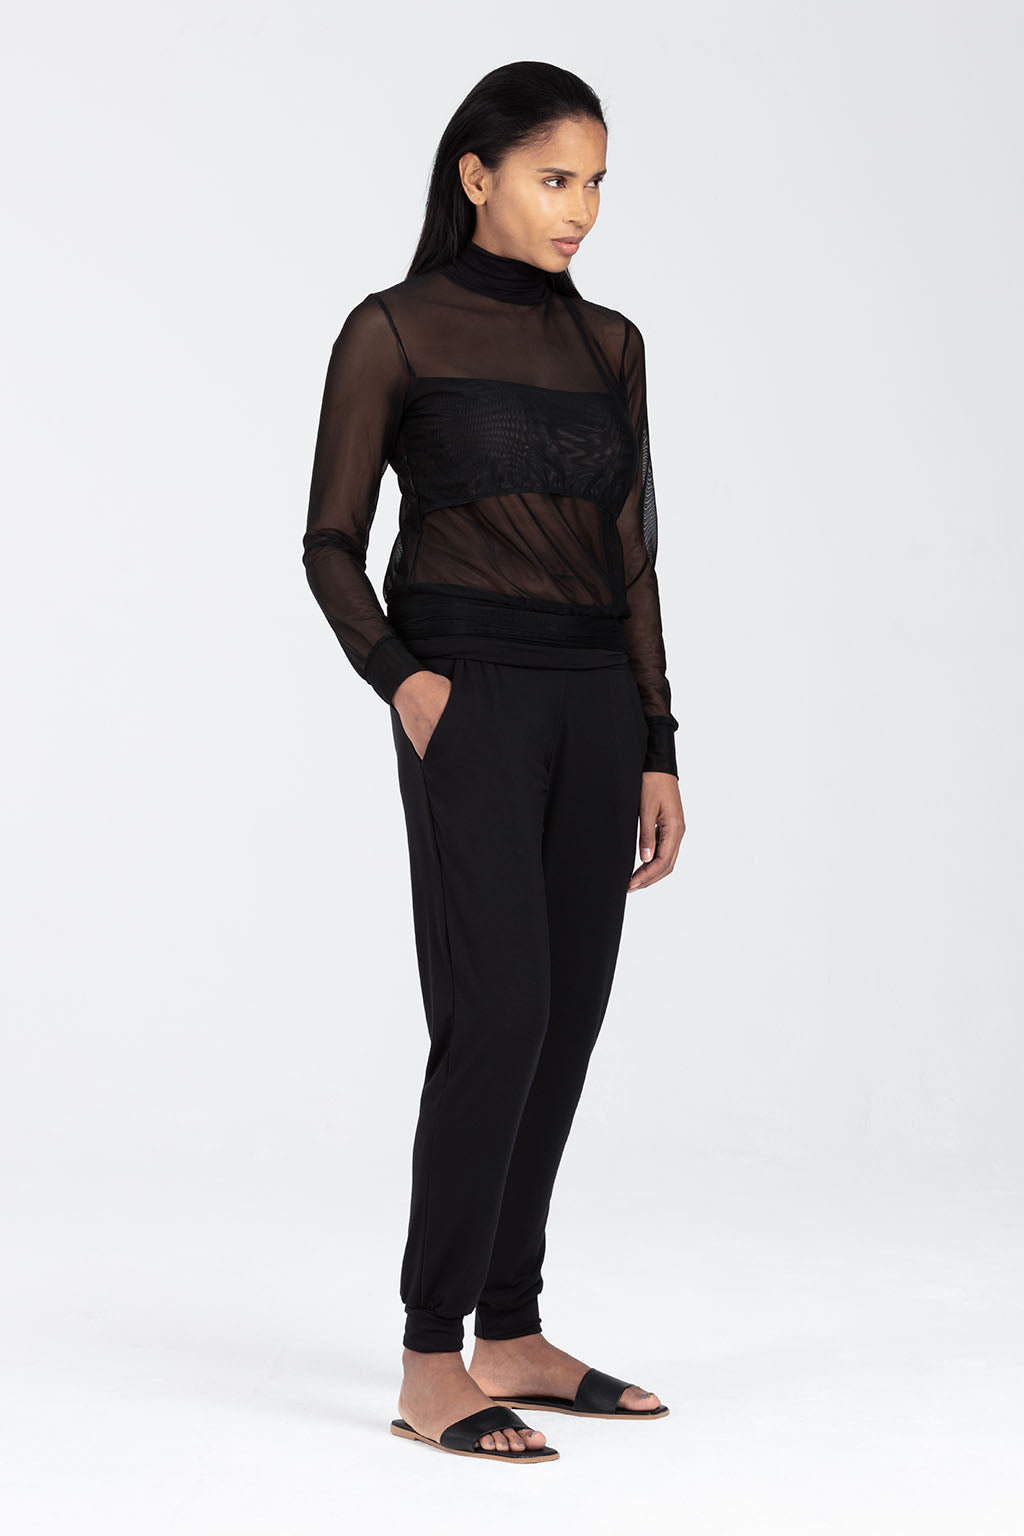 Breastfeeding Mesh Top in Black - Rosa by Sarka London - Front View